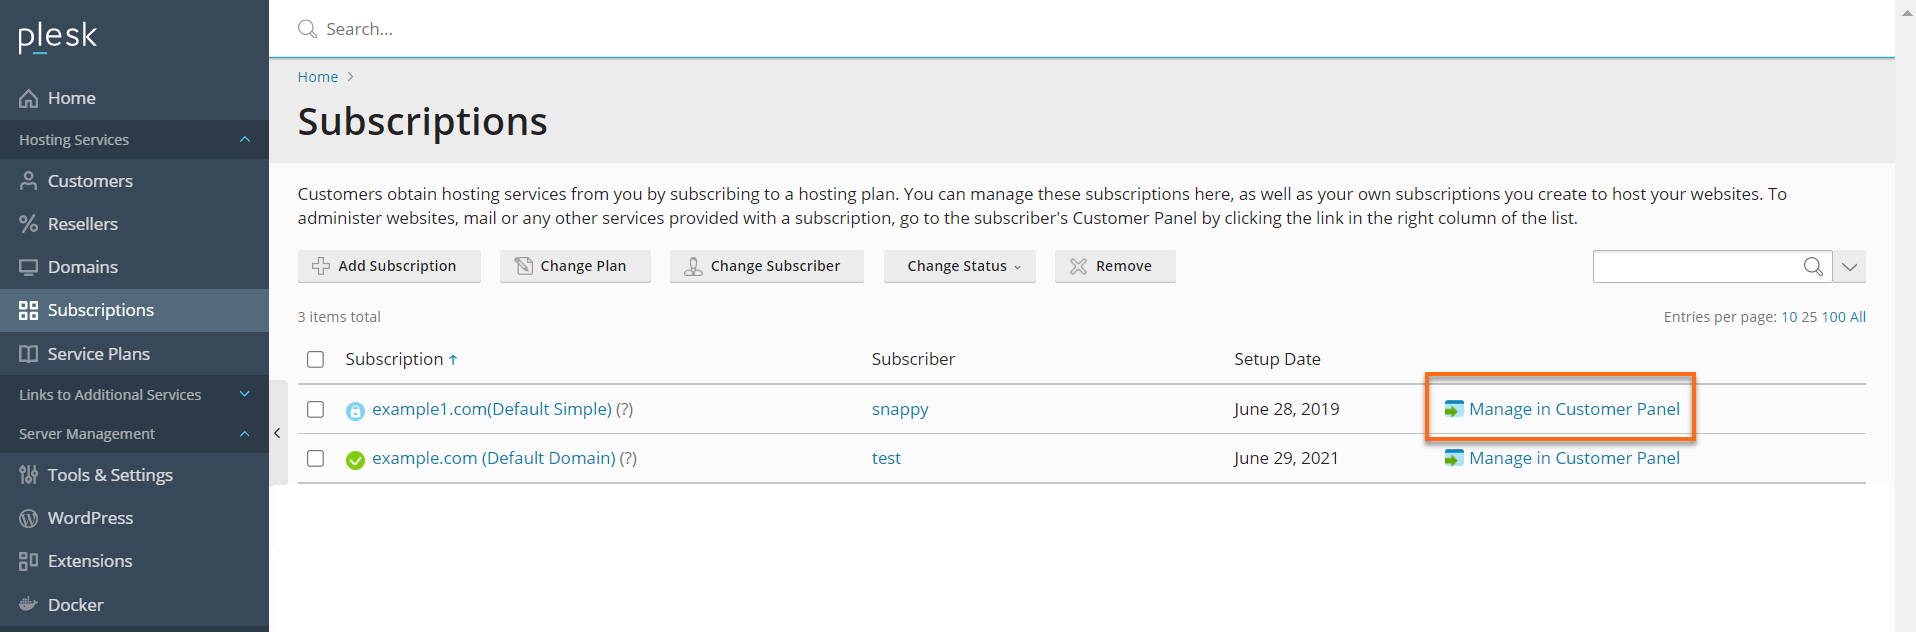 Manage in Customer Panel